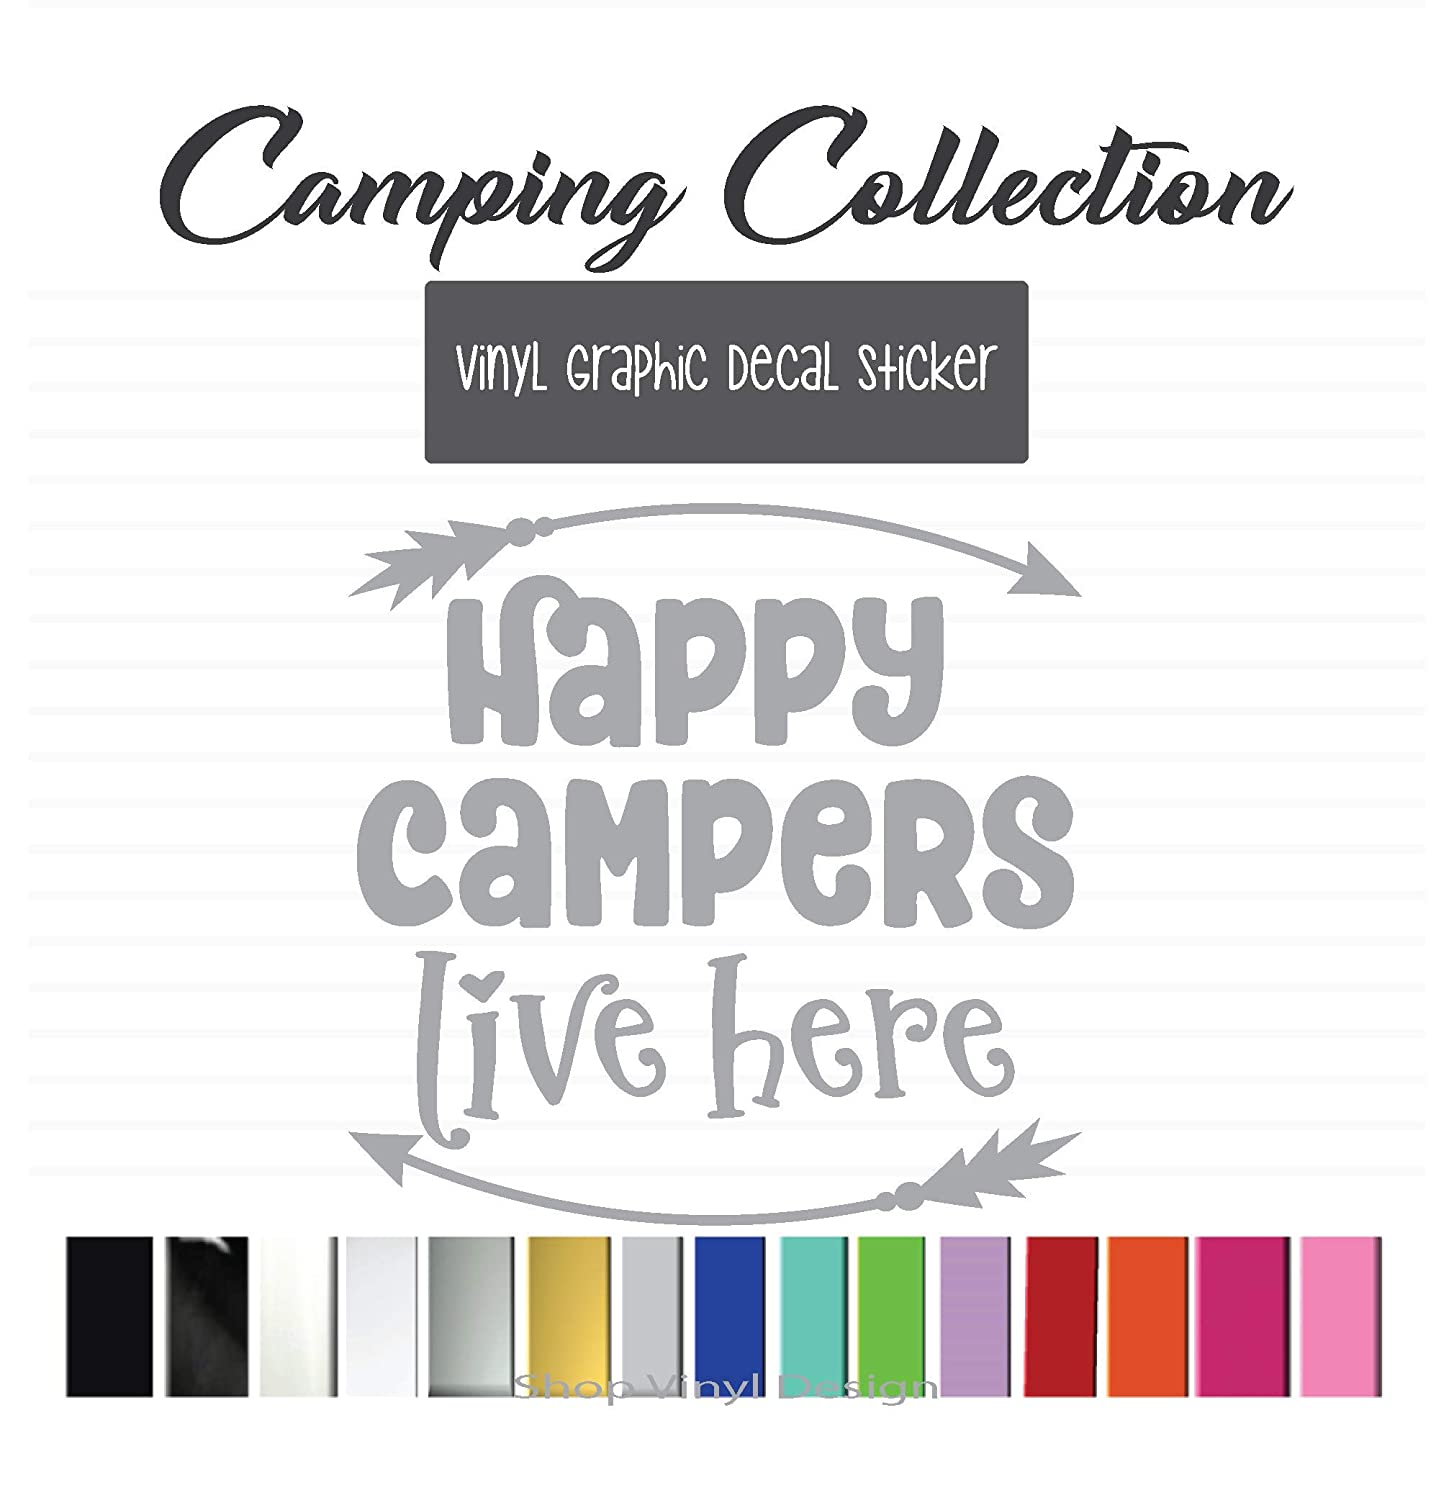 Happy Campers Live Here High Quality Outdoor Rated Vinyl Vinyl Graphic Decal Sticker for Vehicle Car Truck SUV Window Laptop Cooler Planner Locker Safe